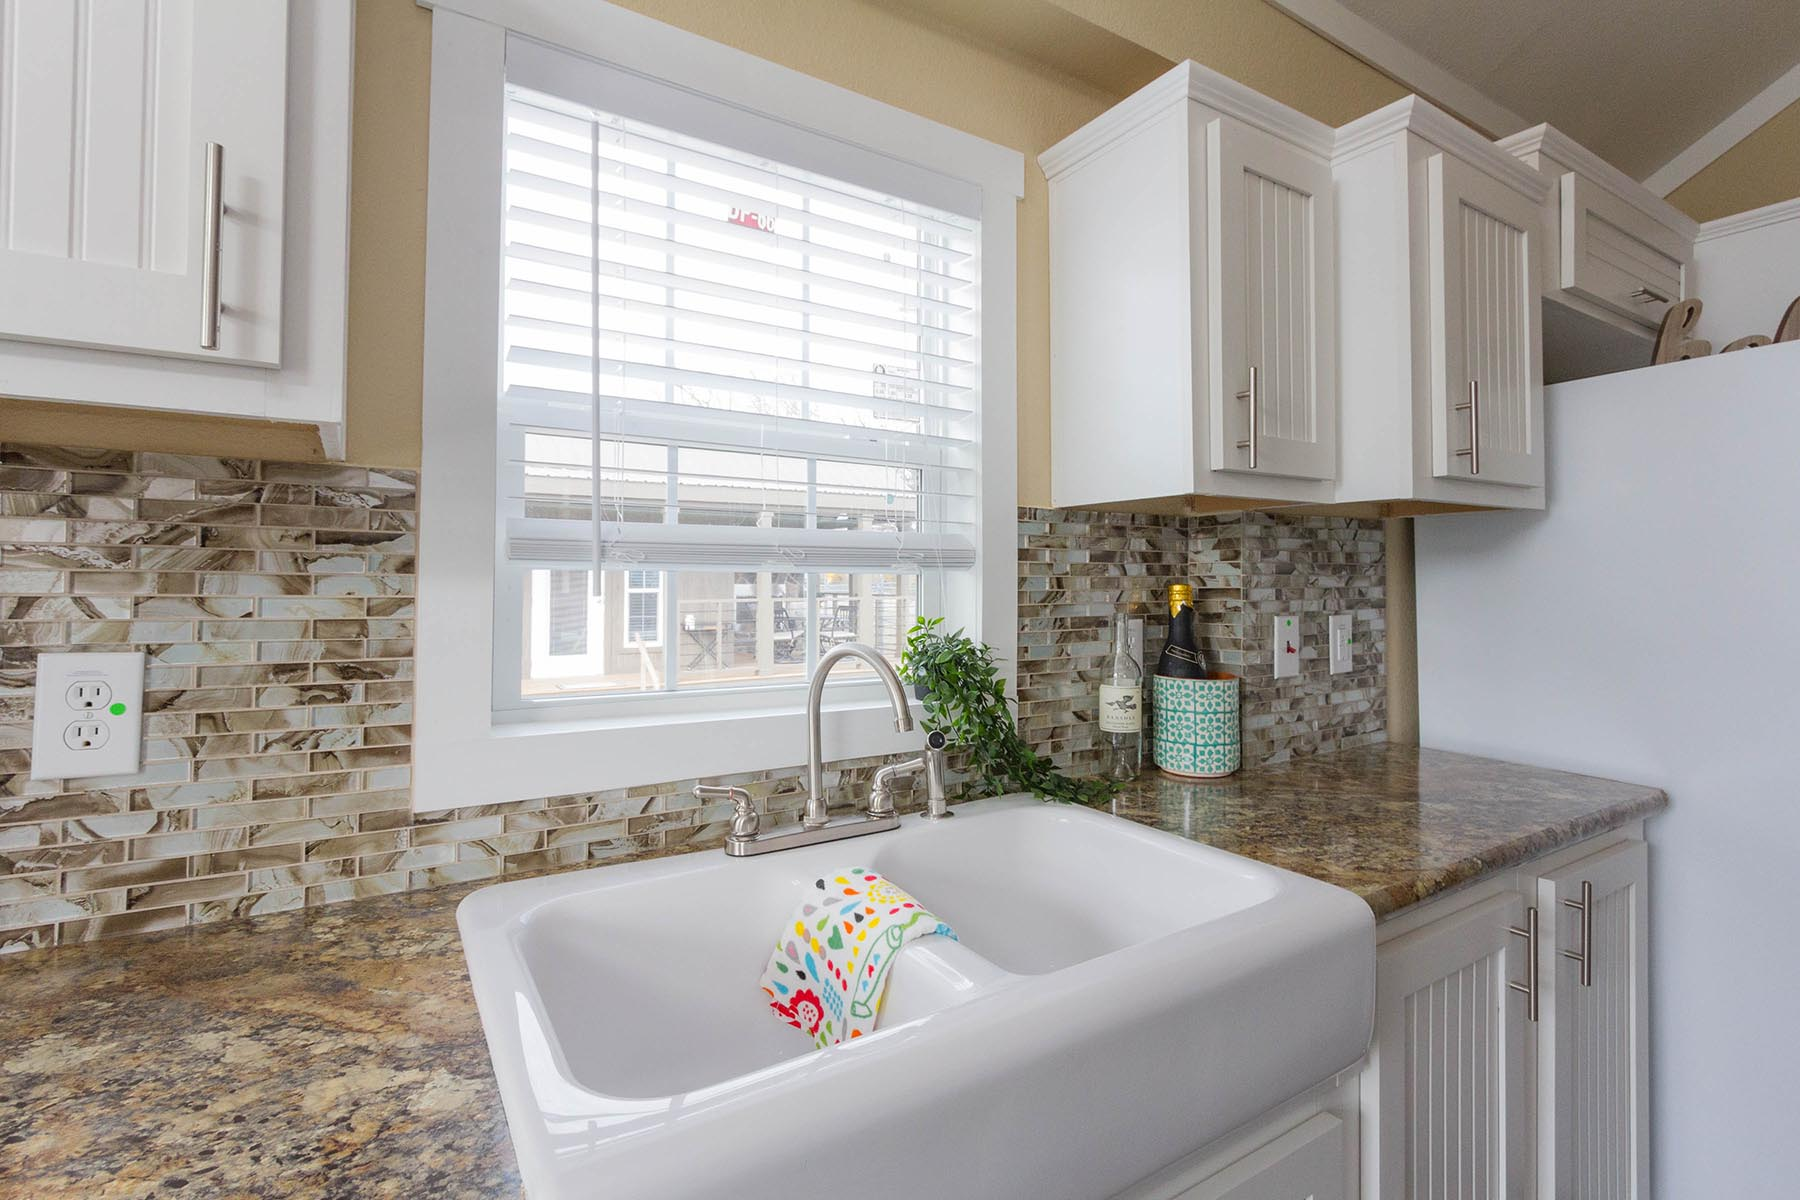 The Malibu APH 505 kitchen sink